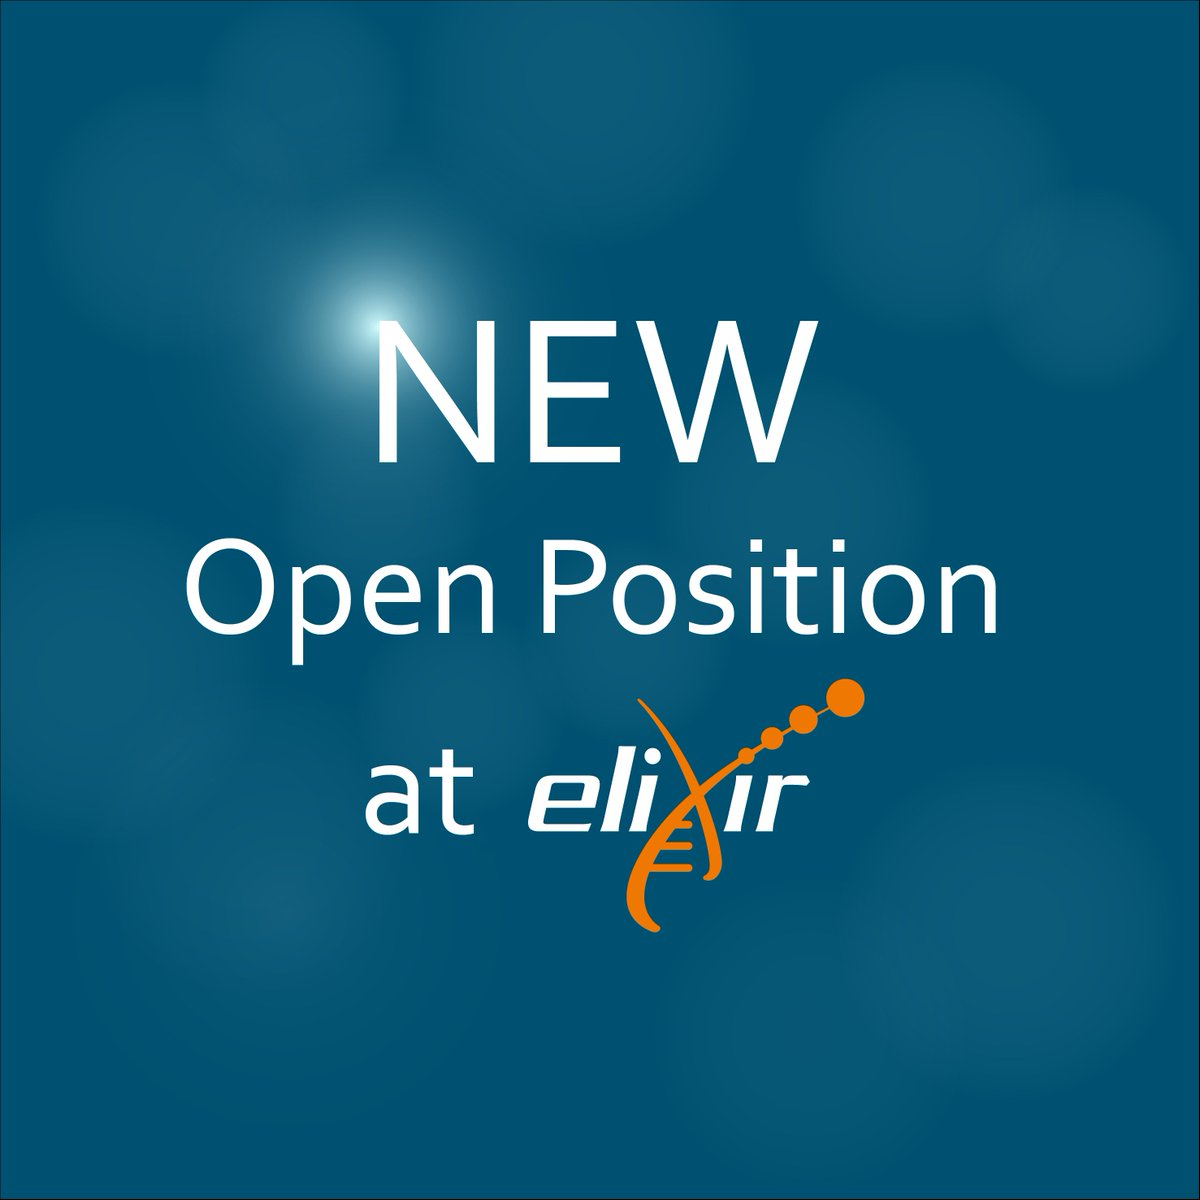 ‼️New Open Position at ELIXIR  We are seeking an experienced #ProjectSupport Administrator to join us in Hinxton, UK Become part of our #international, #kind and #supportive team  Apply here ➡️https://t.co/Nj3UGyaqD8 🕒Closing on 11 June 2020 https://t.co/oTyY988miY